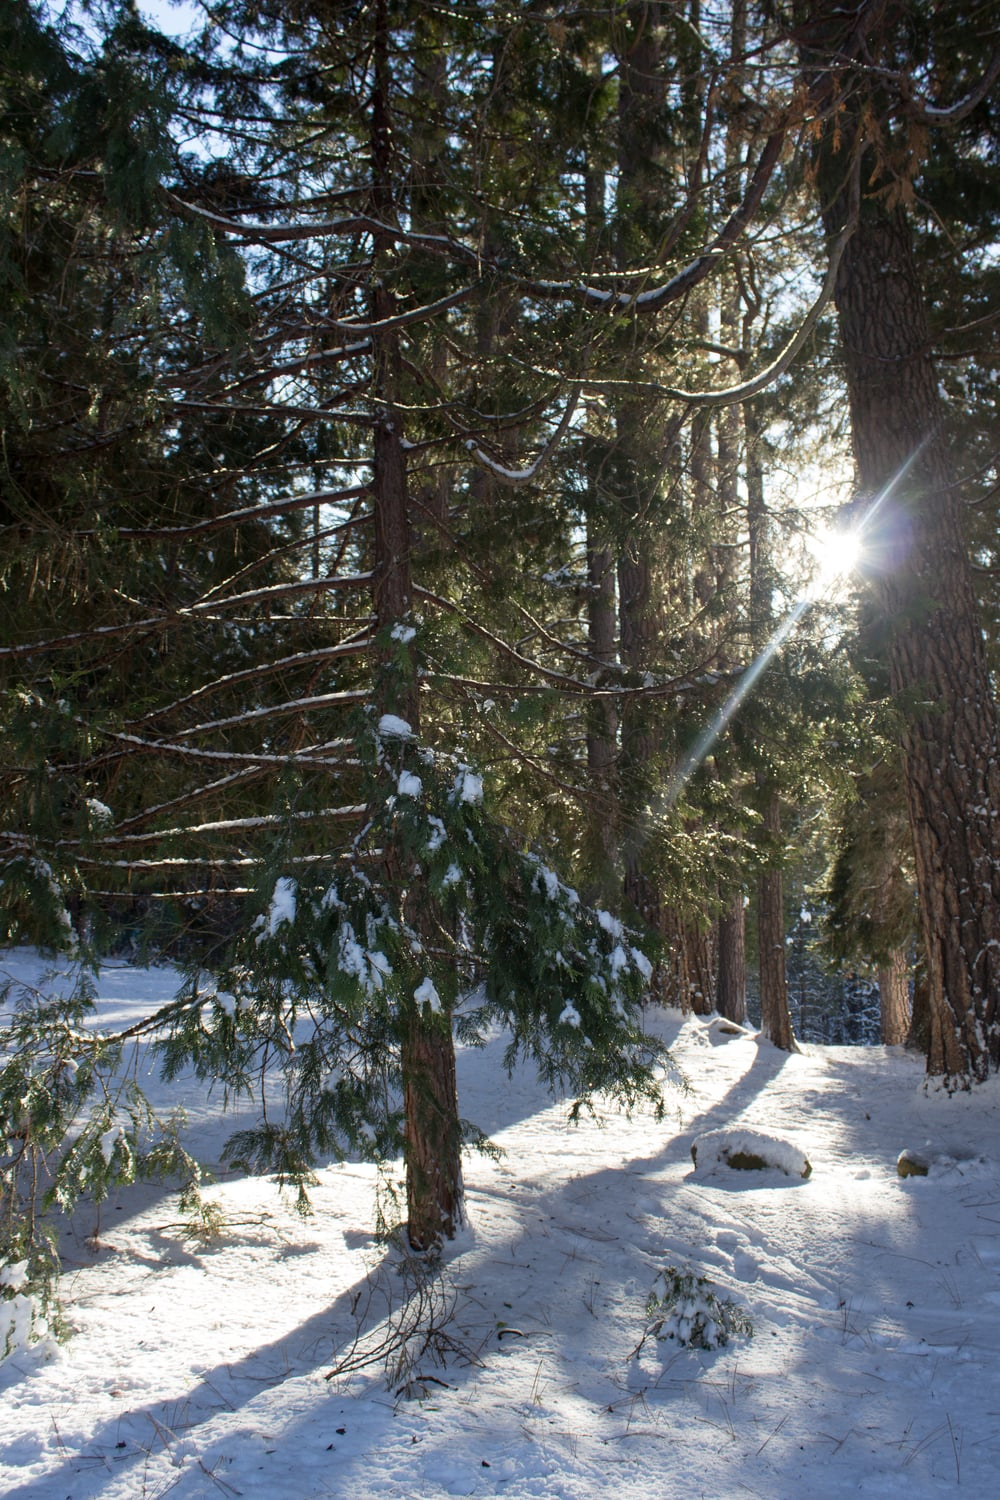 Angelic light, deep snowy woods...catch your breath if you can.